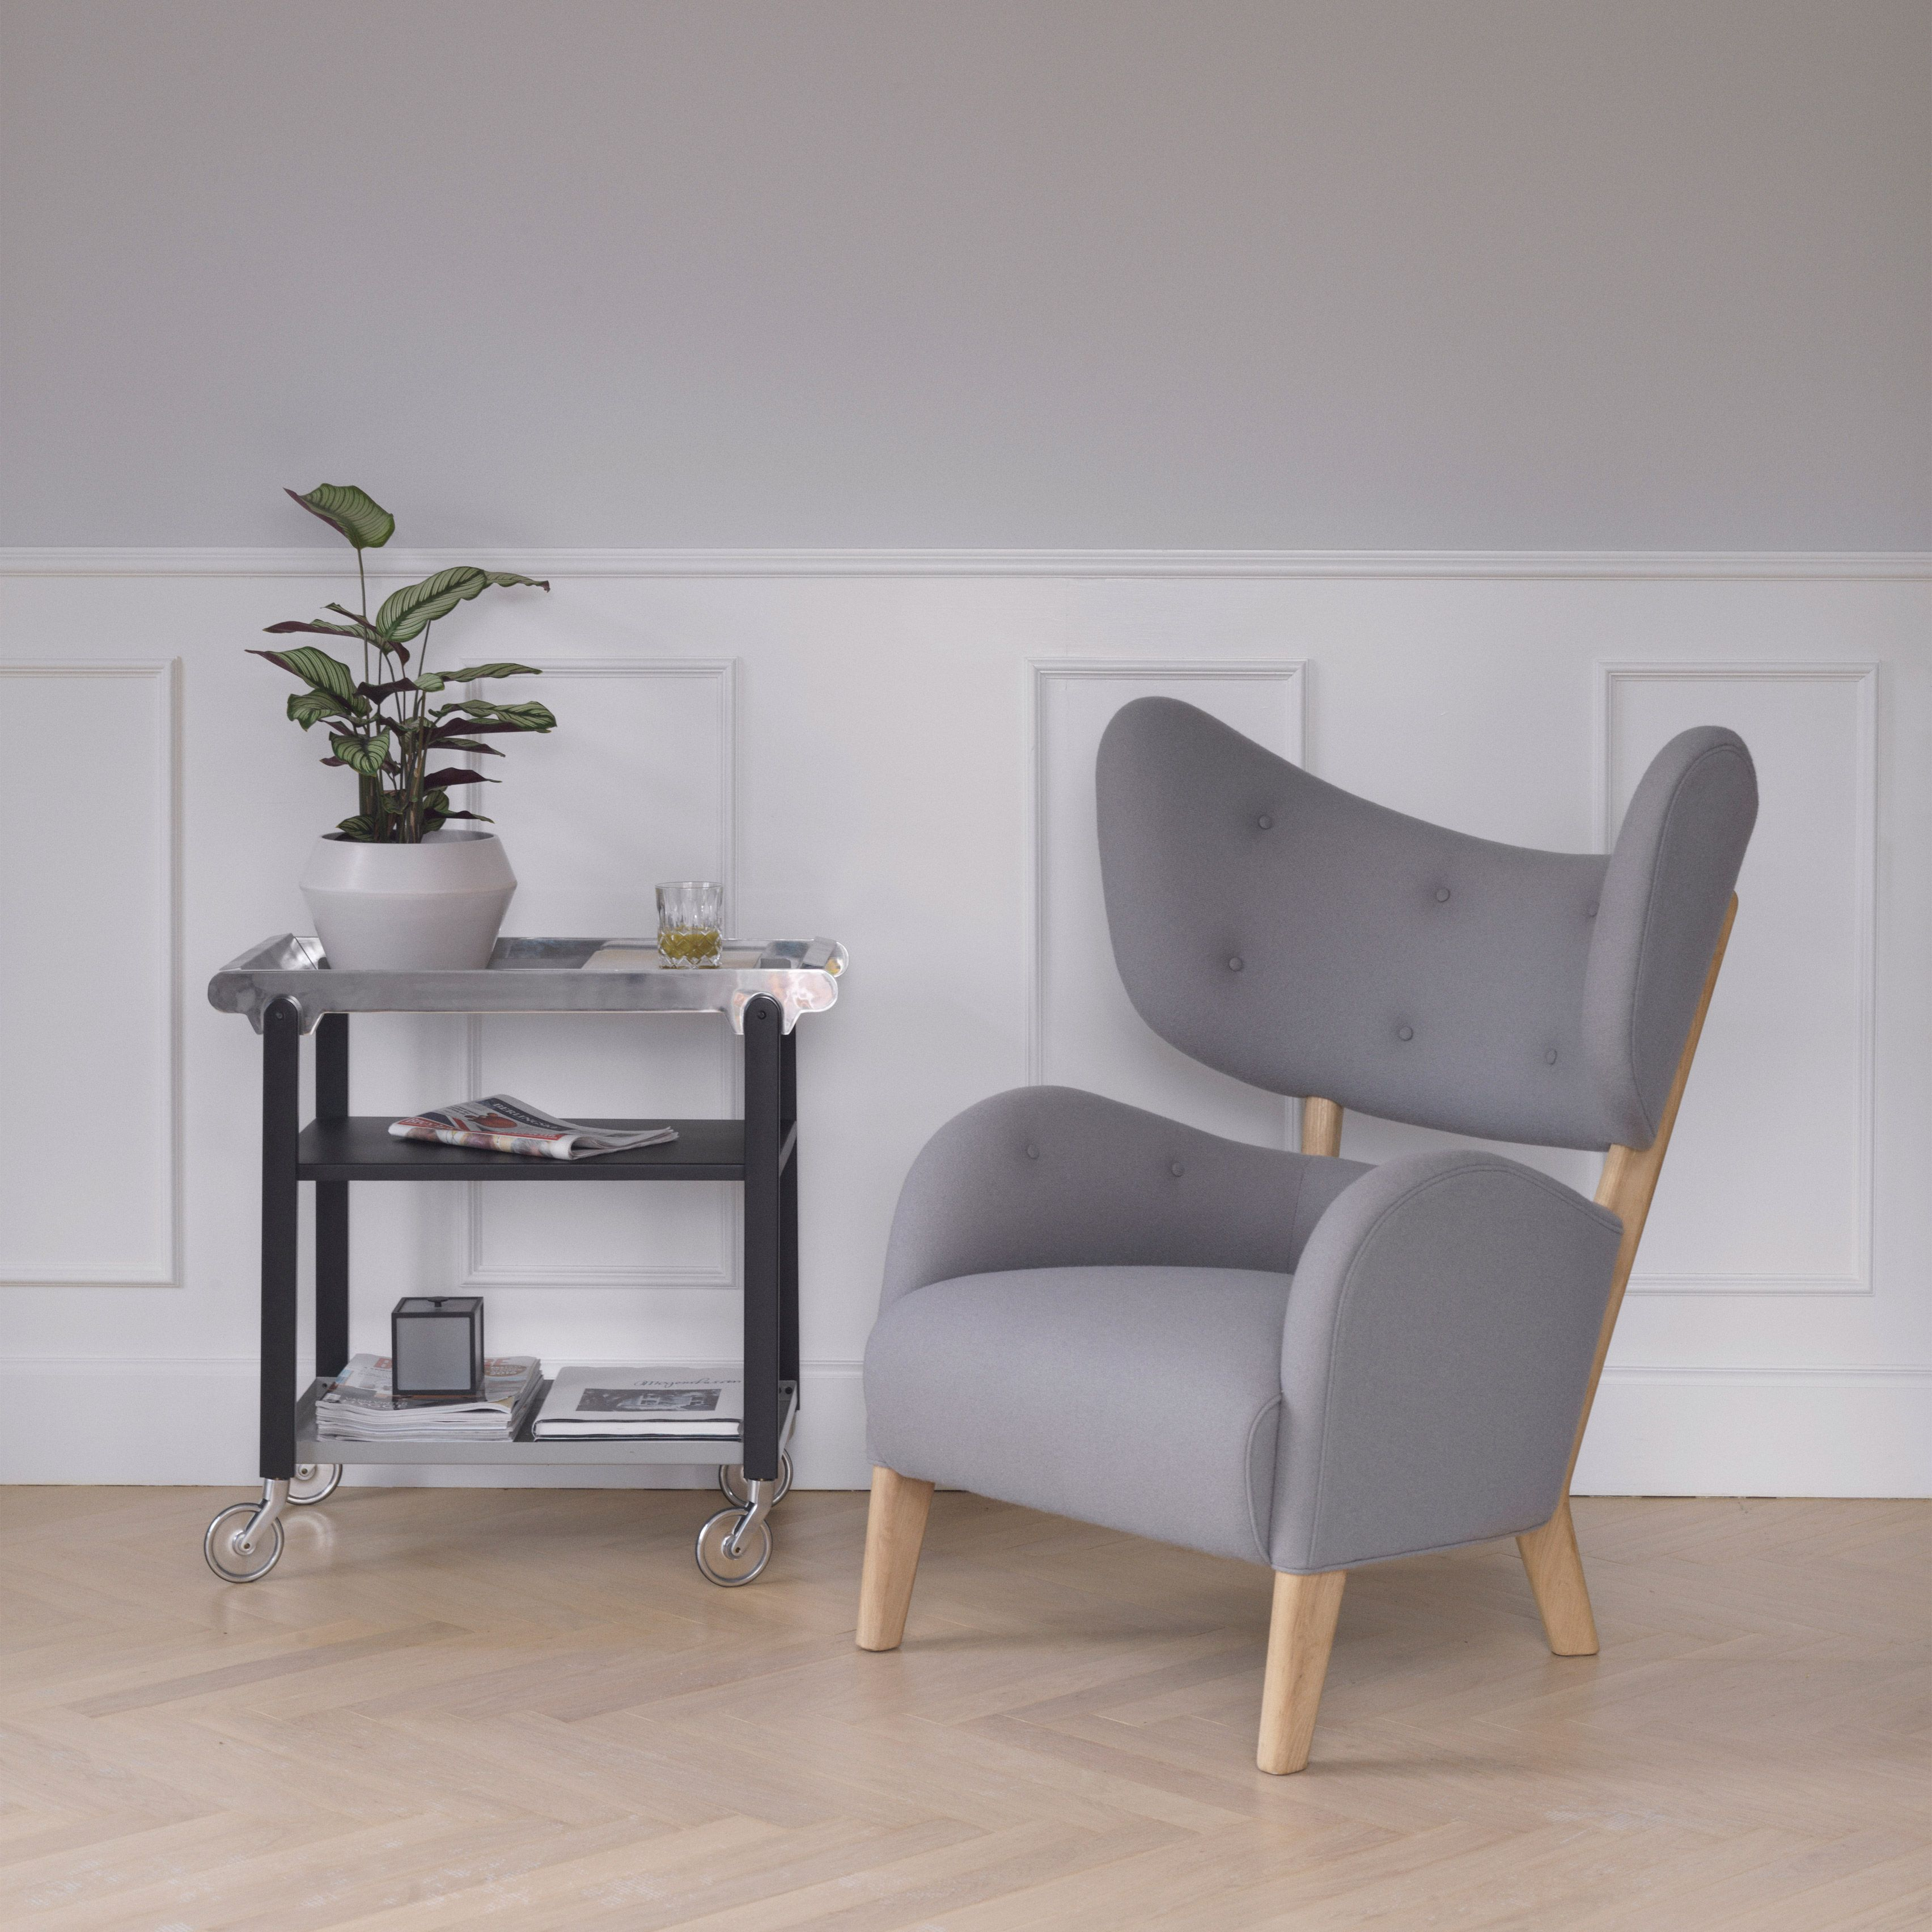 By Lassen releases new edition of one-off Flemming Lassen armchair